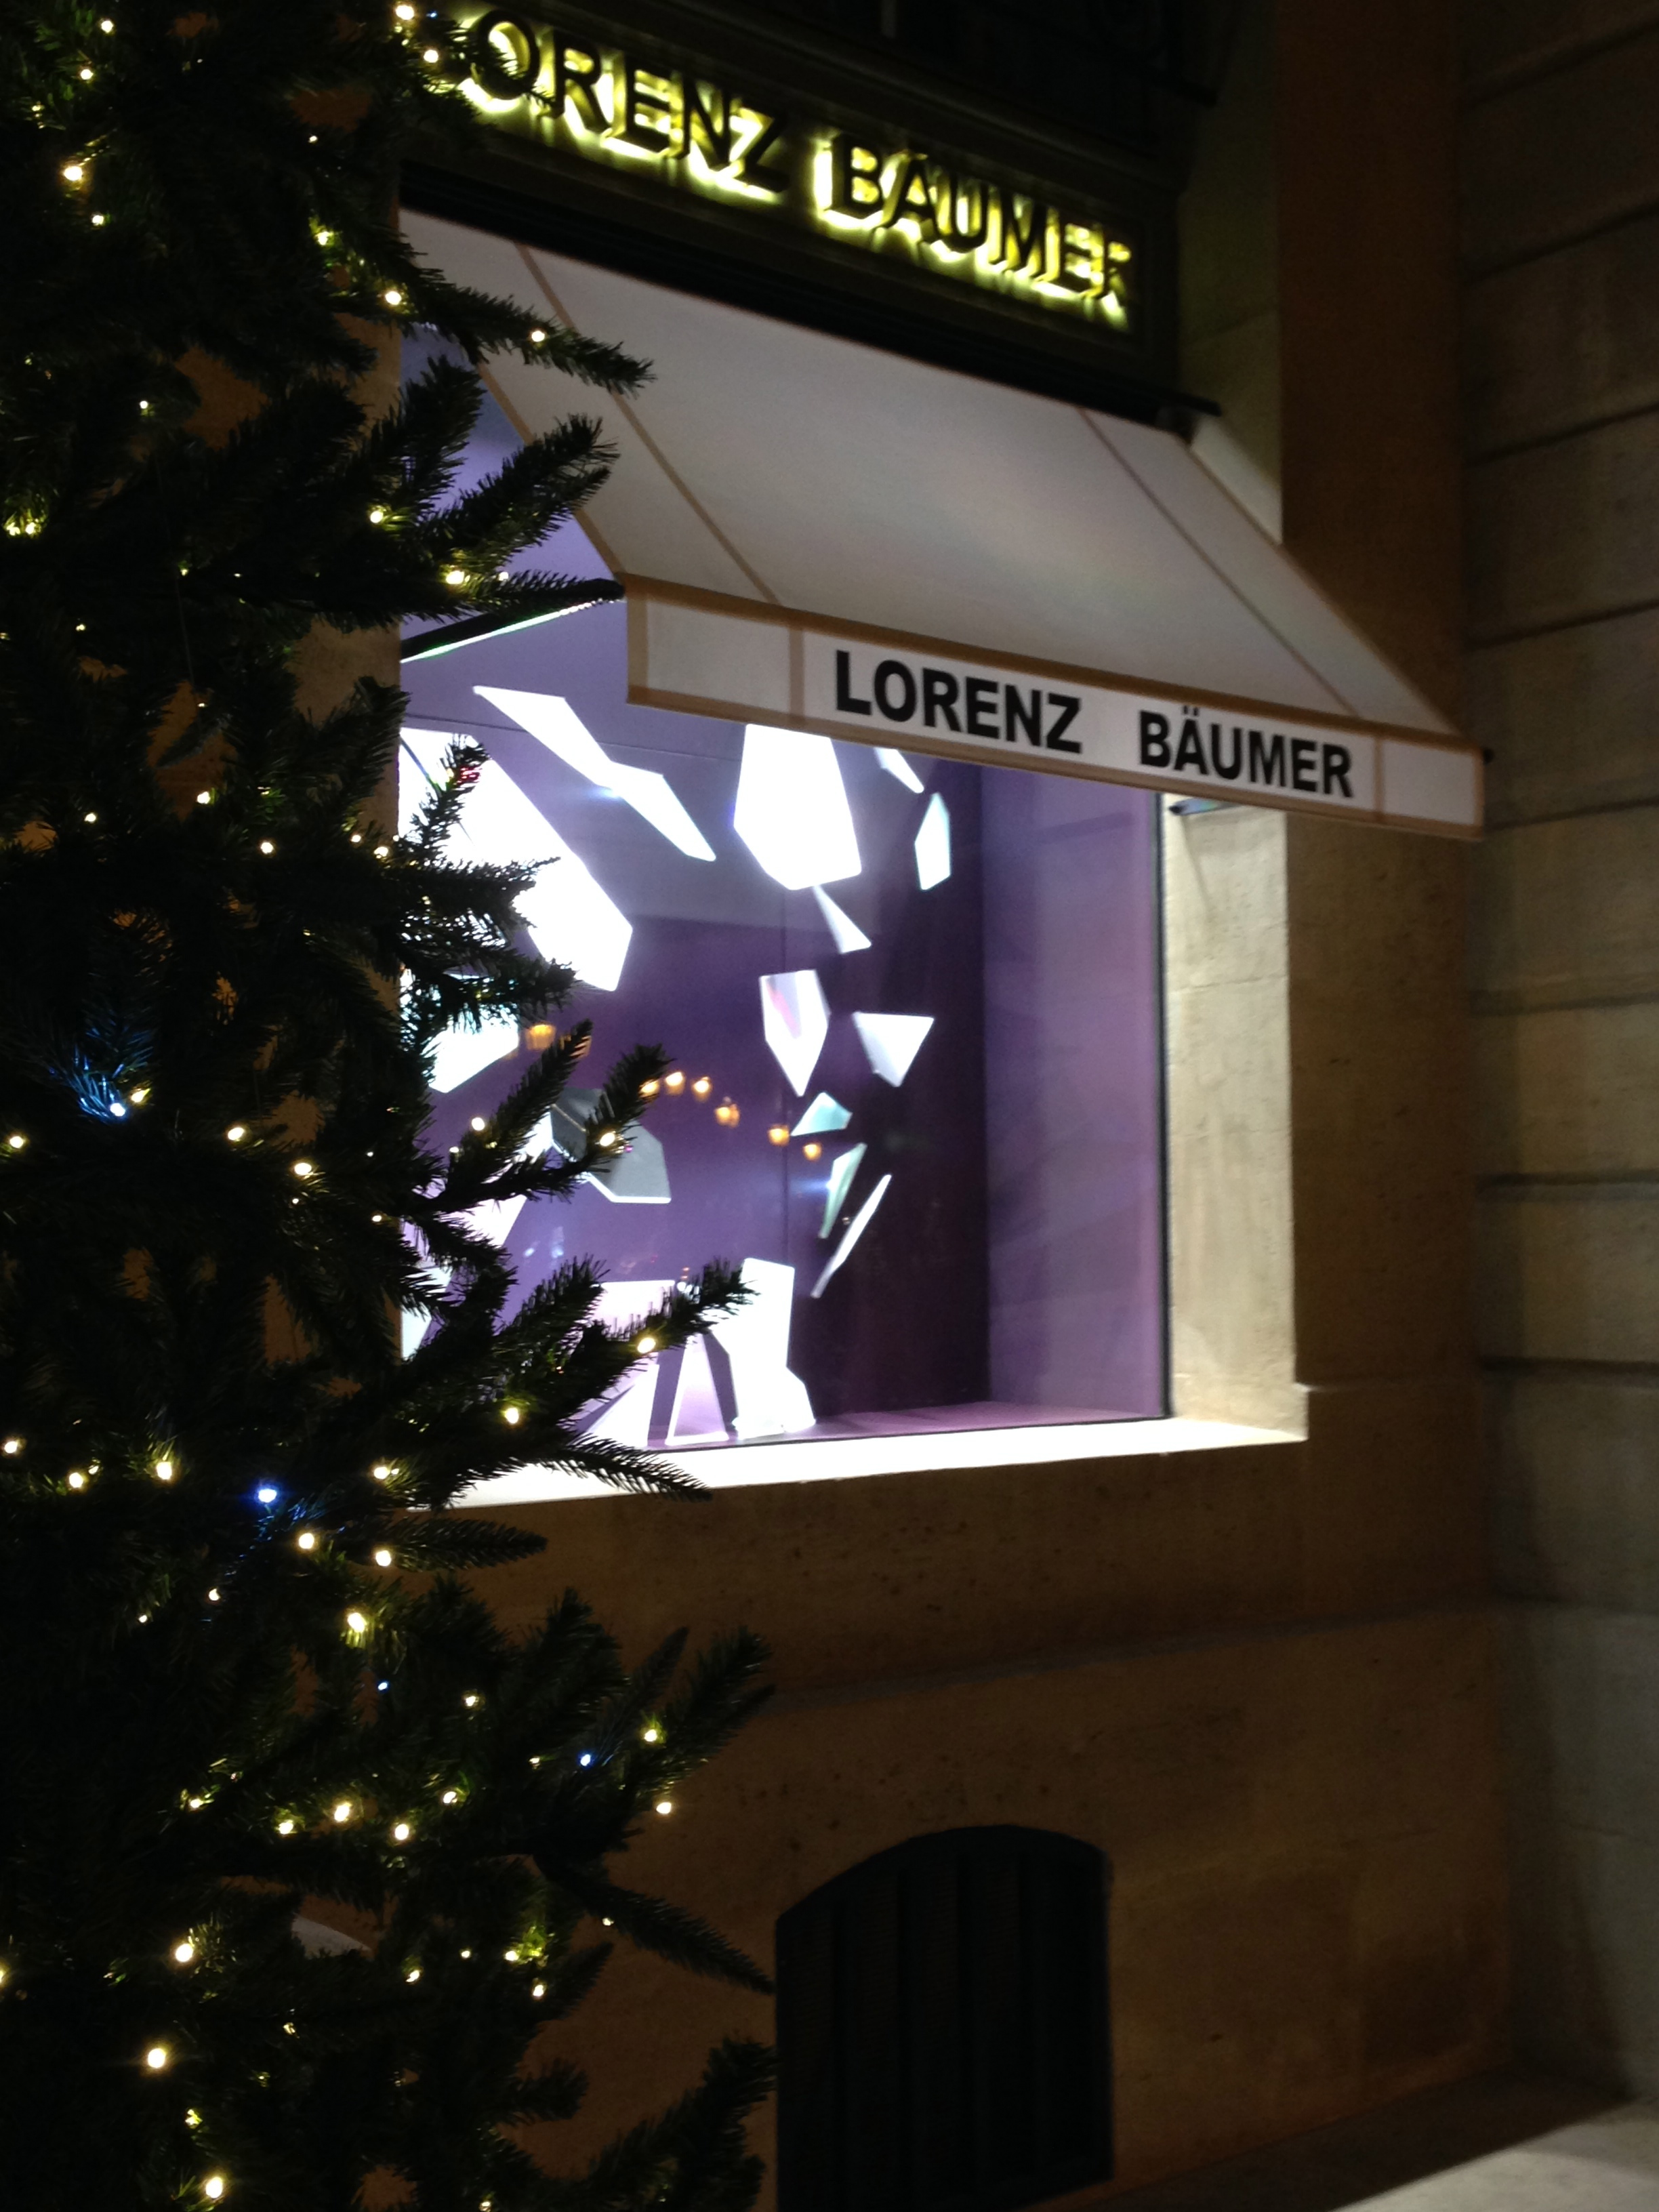 Visiting Garth Knight collaborator and collector, Lorenz Baumer, Place Vendome, Paris 3.12.13